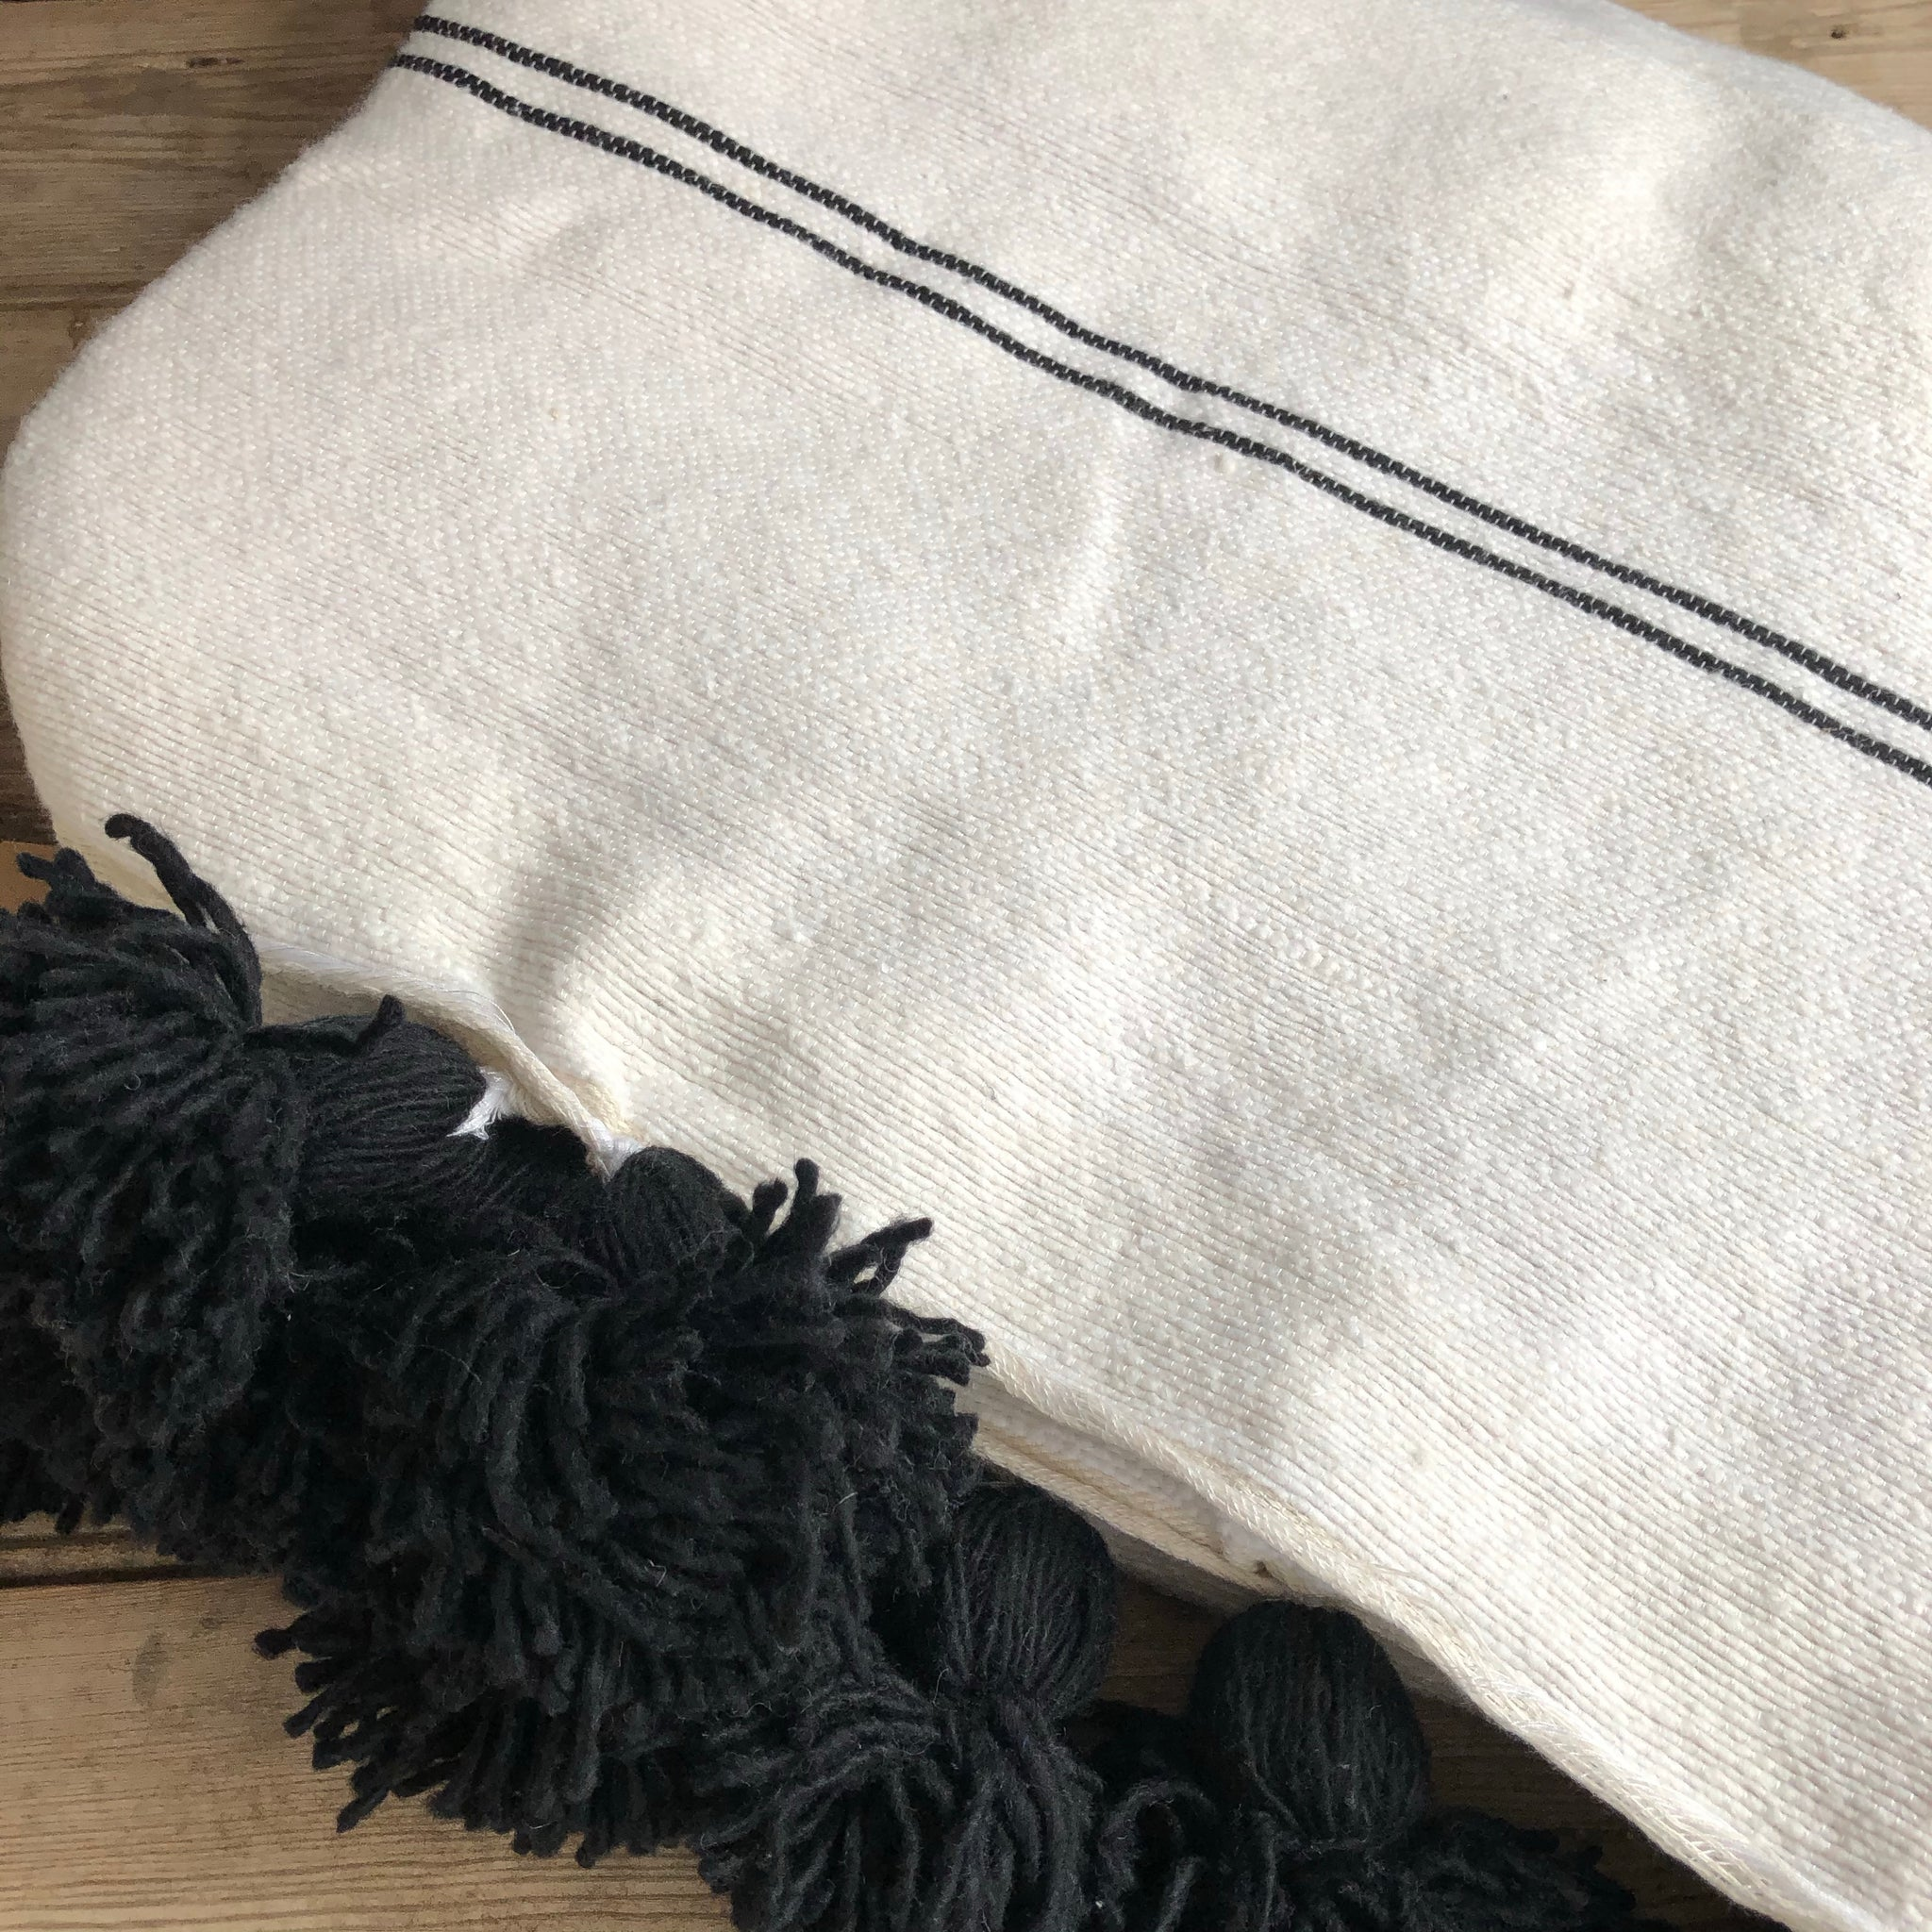 Moroccan Cotton Tassel Bedspread - Black & White Thin Stripe